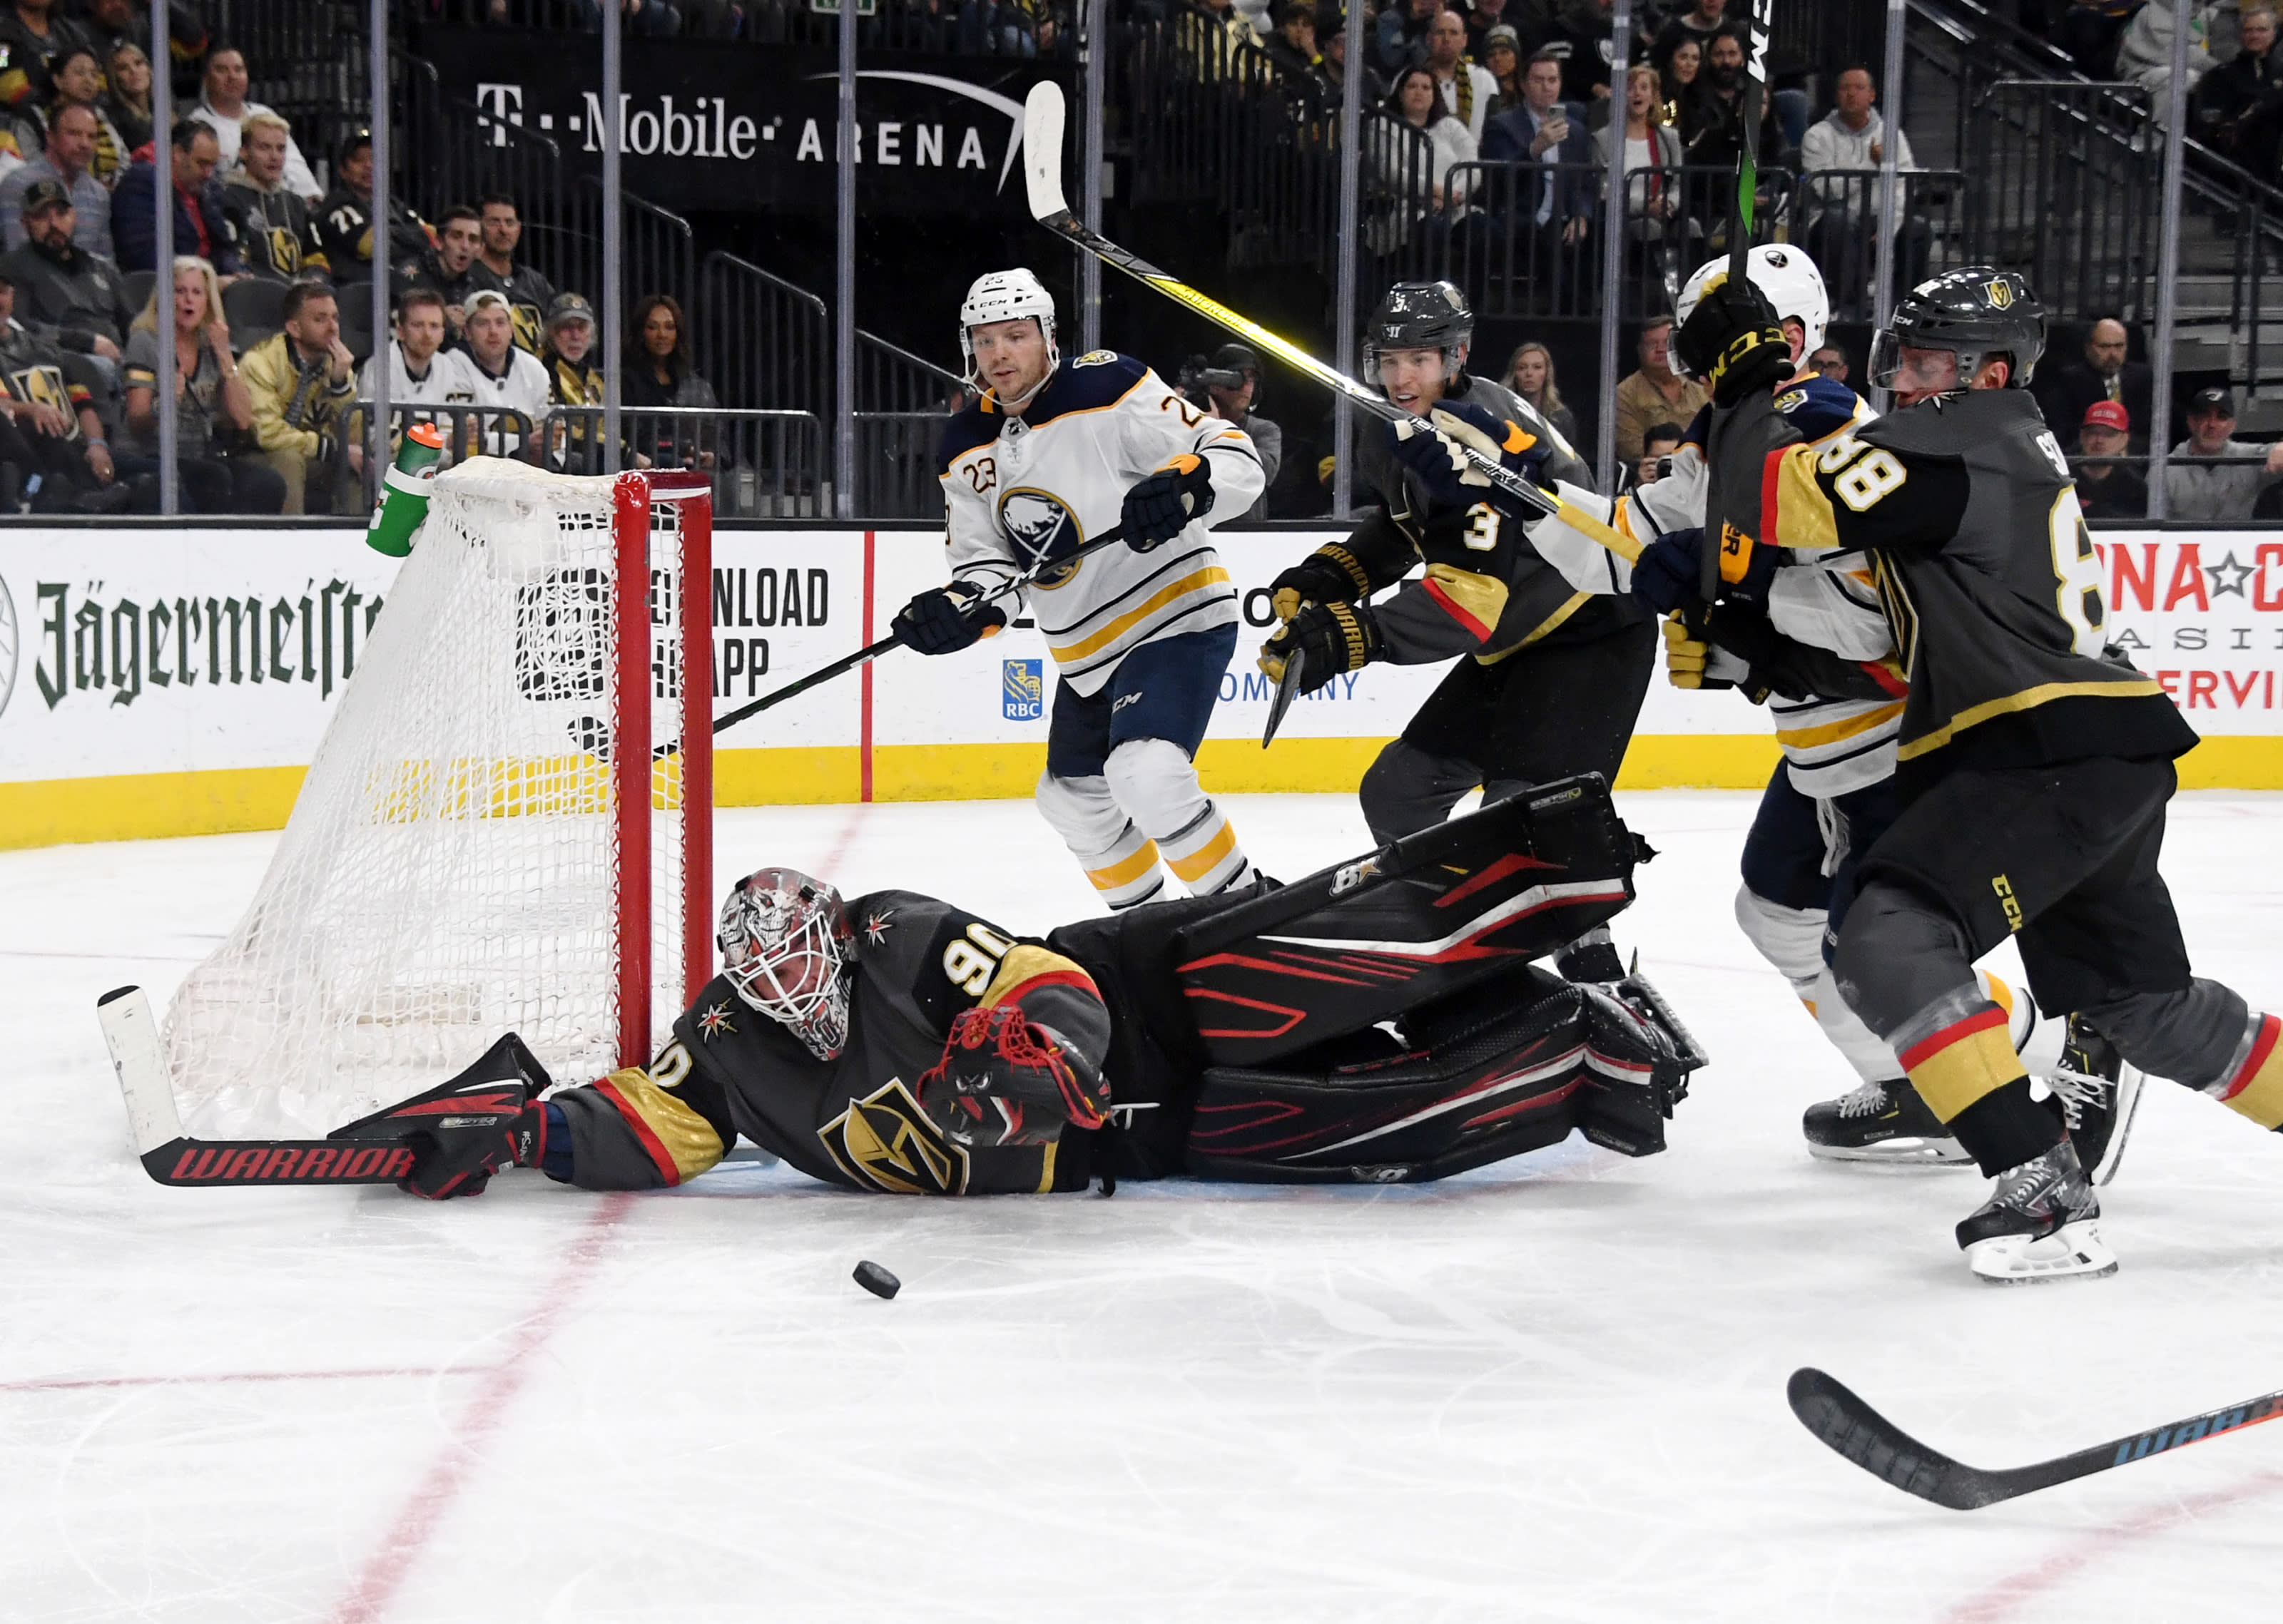 Robin Lehner #90 of the Vegas Golden Knights makes a diving save against the Buffalo Sabres.